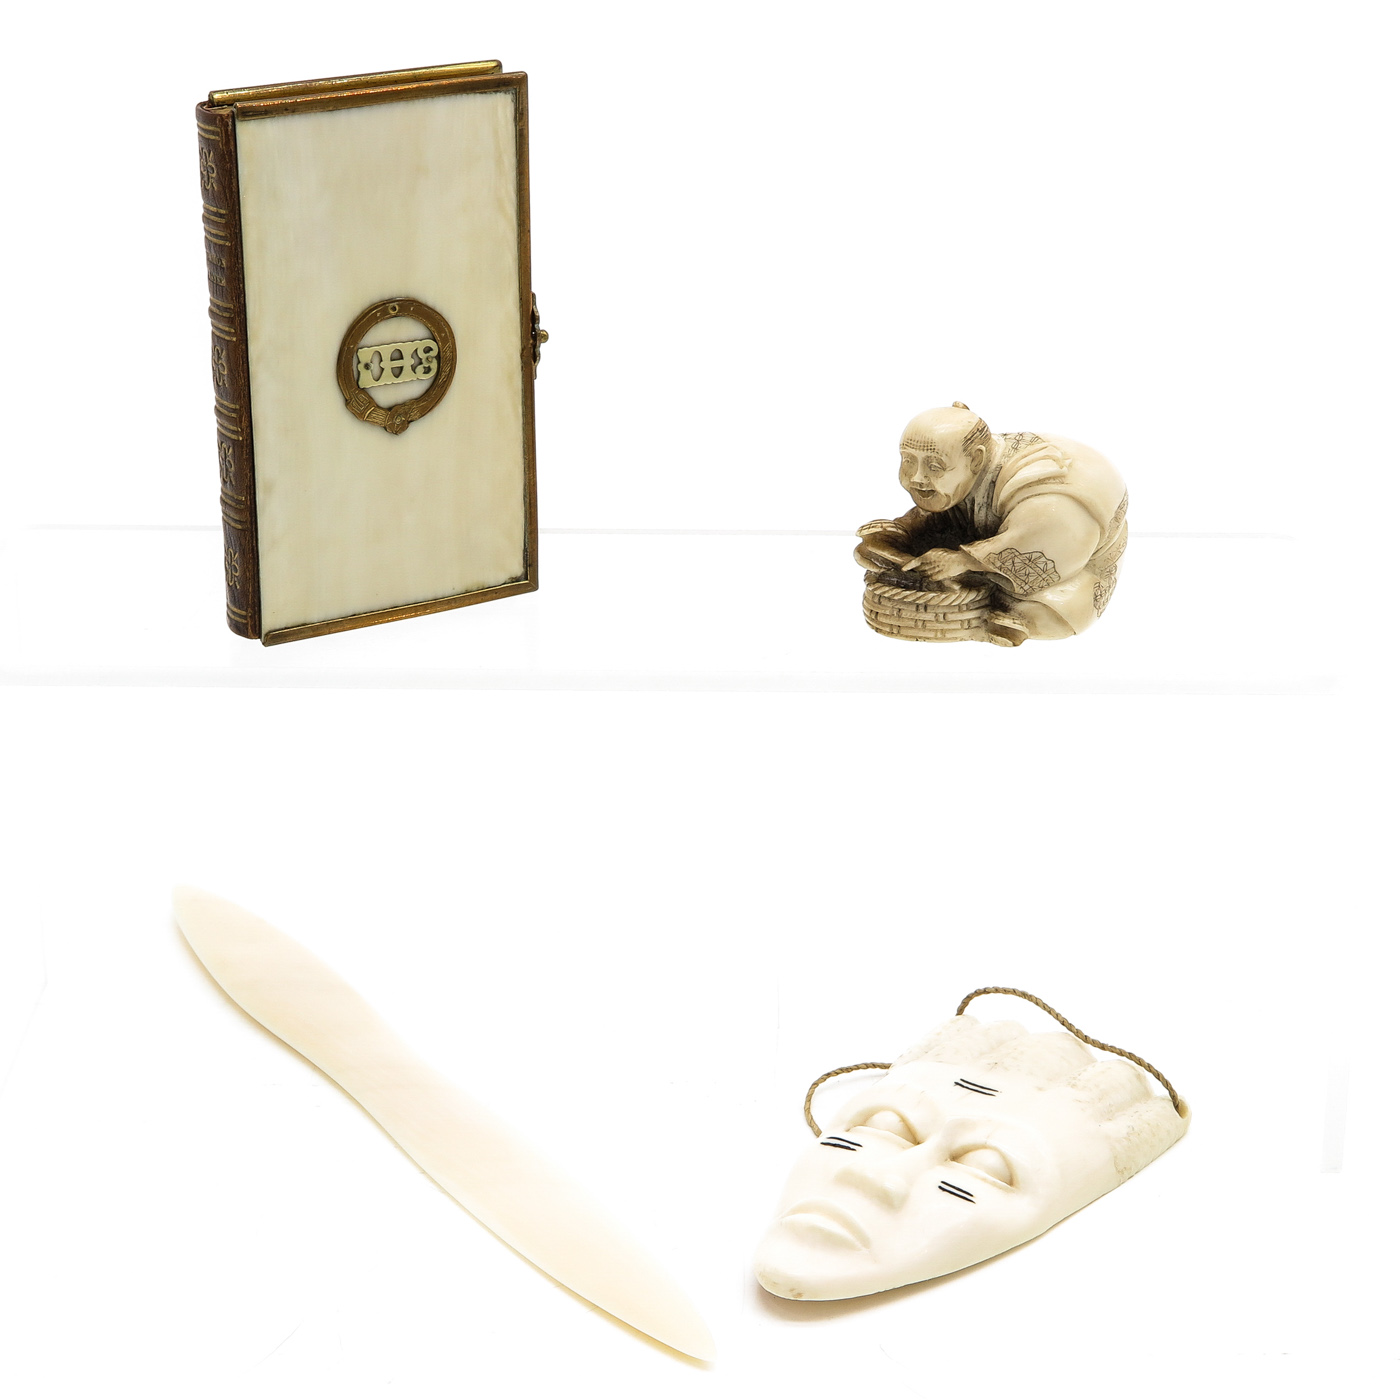 Lot 1093 - A Diverse Collection of Items including Netsuke